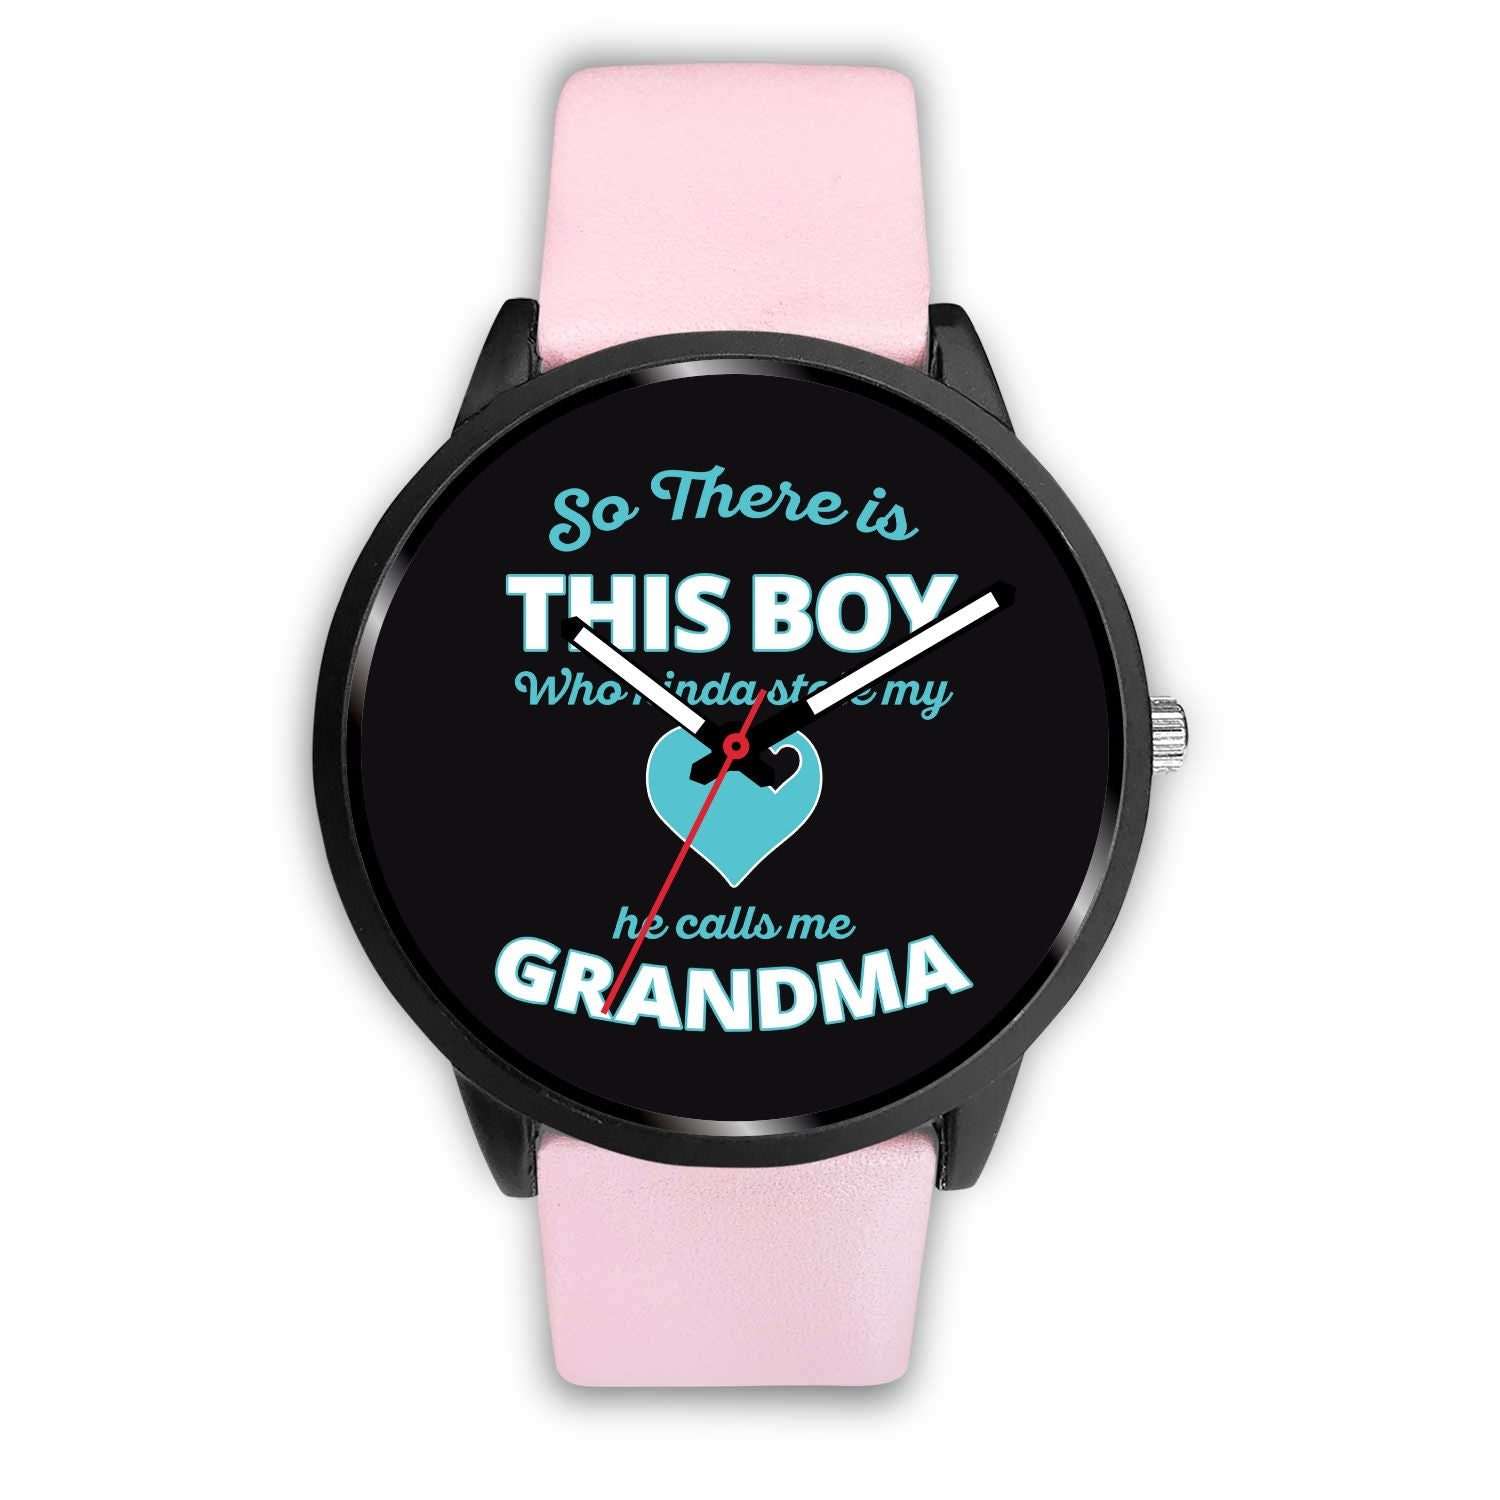 Boy Calls Me Grandma Pink Women's Watch